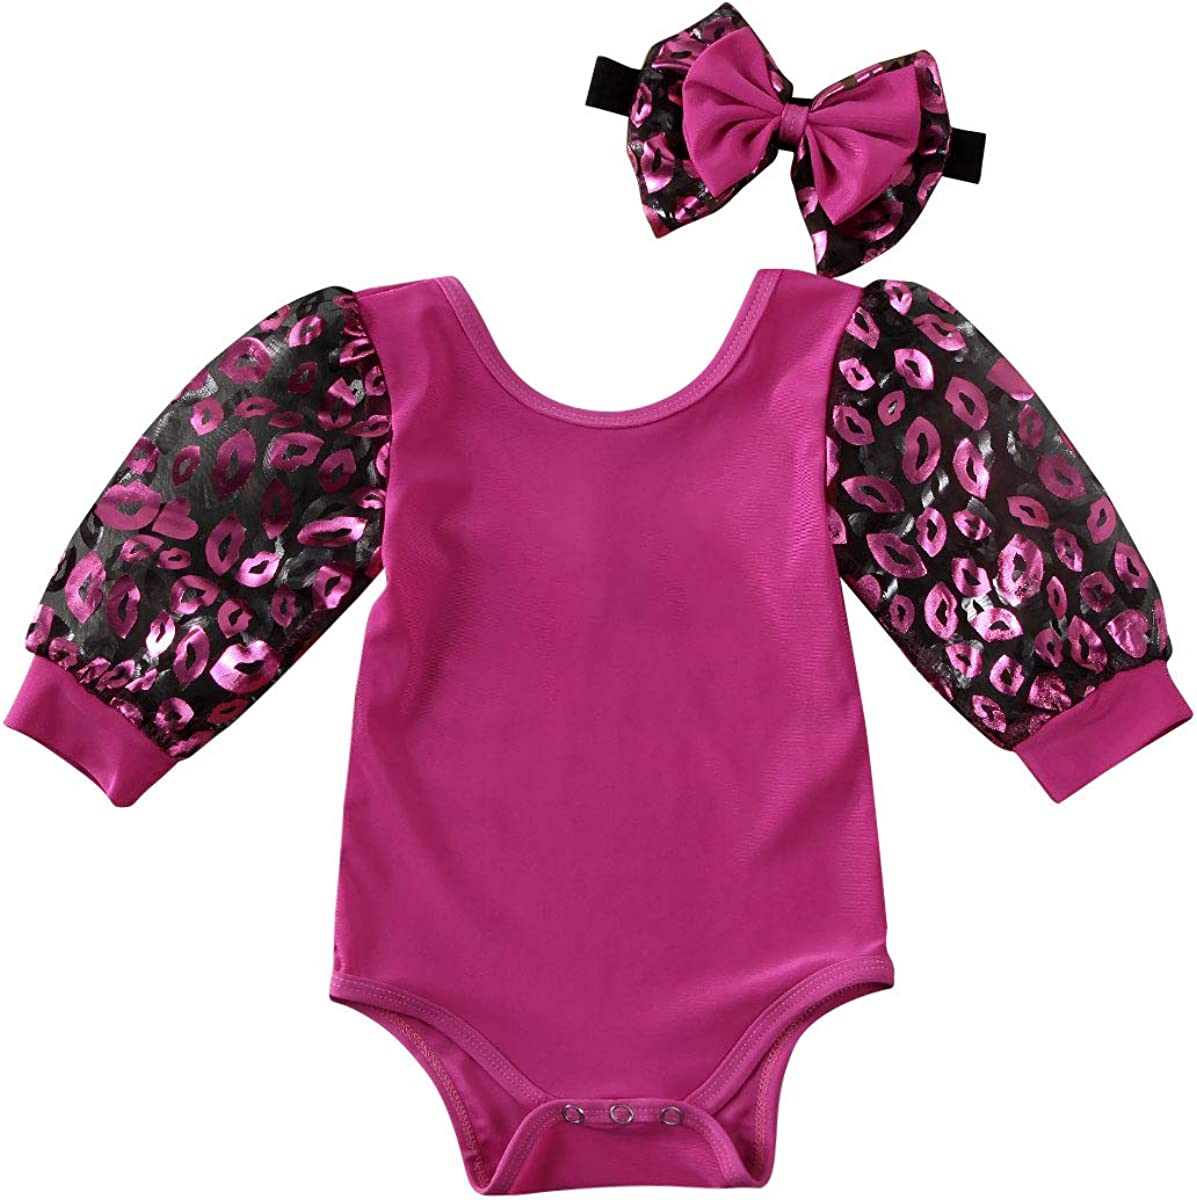 Newborn Toddler Baby Girl Puff Sleeve Mesh Solid Romper Bodysuit Outfits Clothes